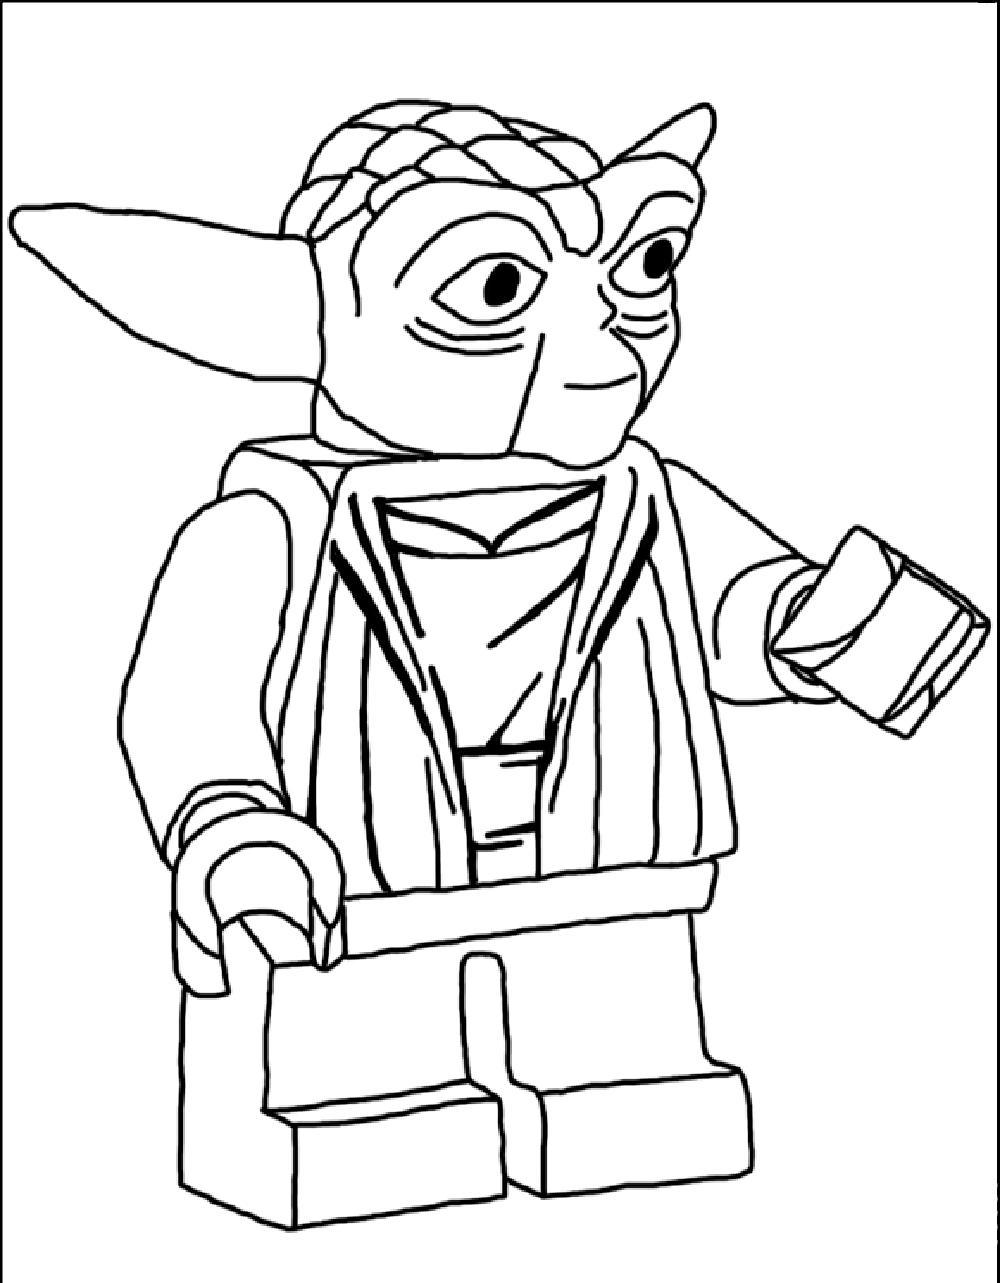 lego star wars colouring create your own lego coloring pages for kids wars lego colouring star